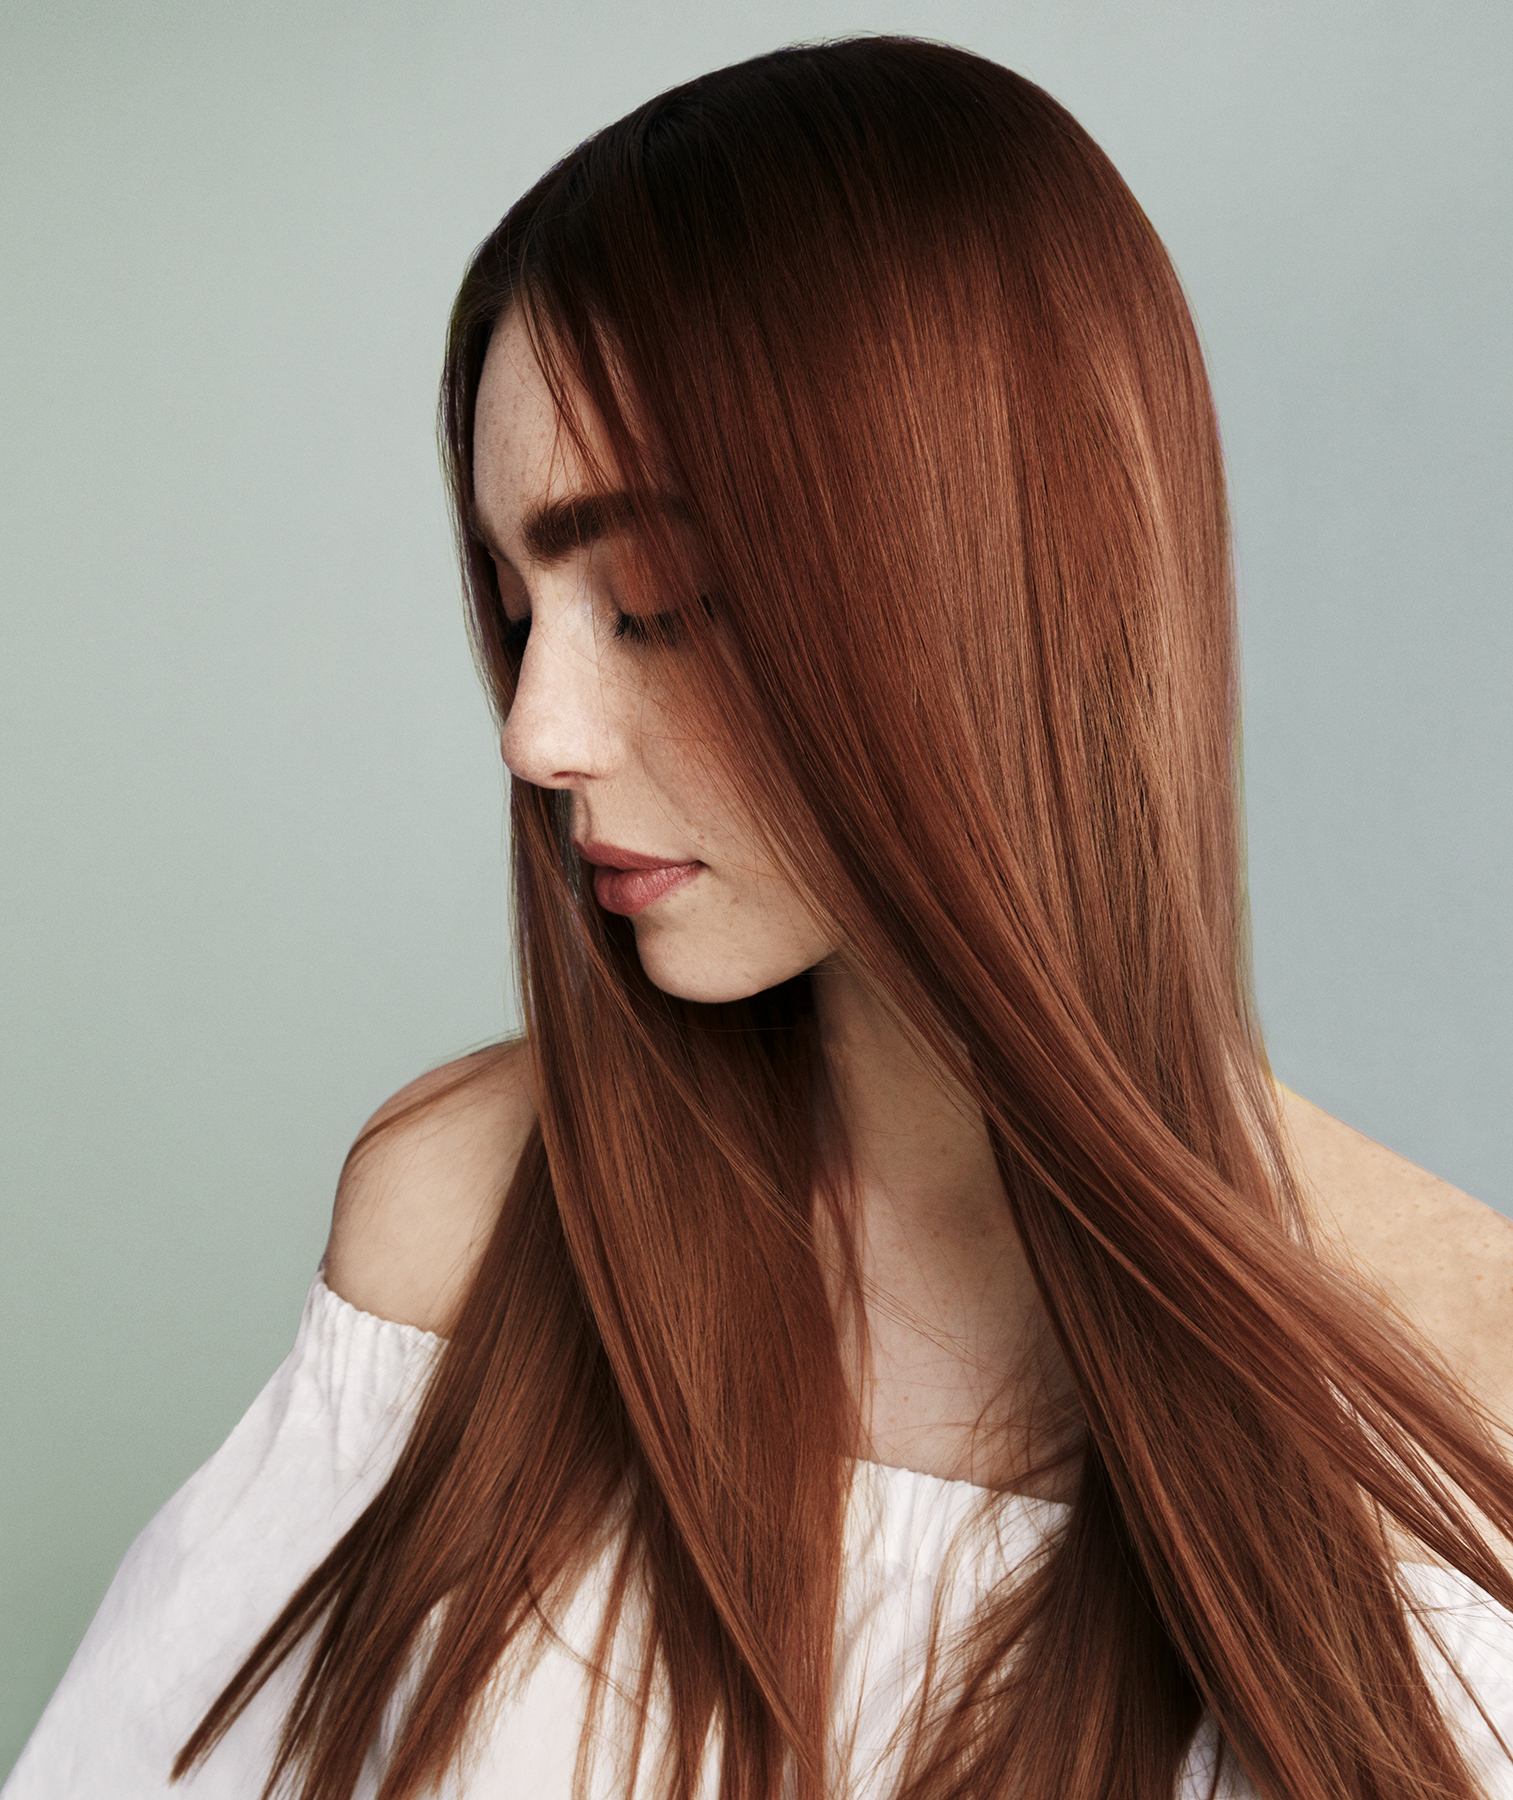 Model with rich red hair